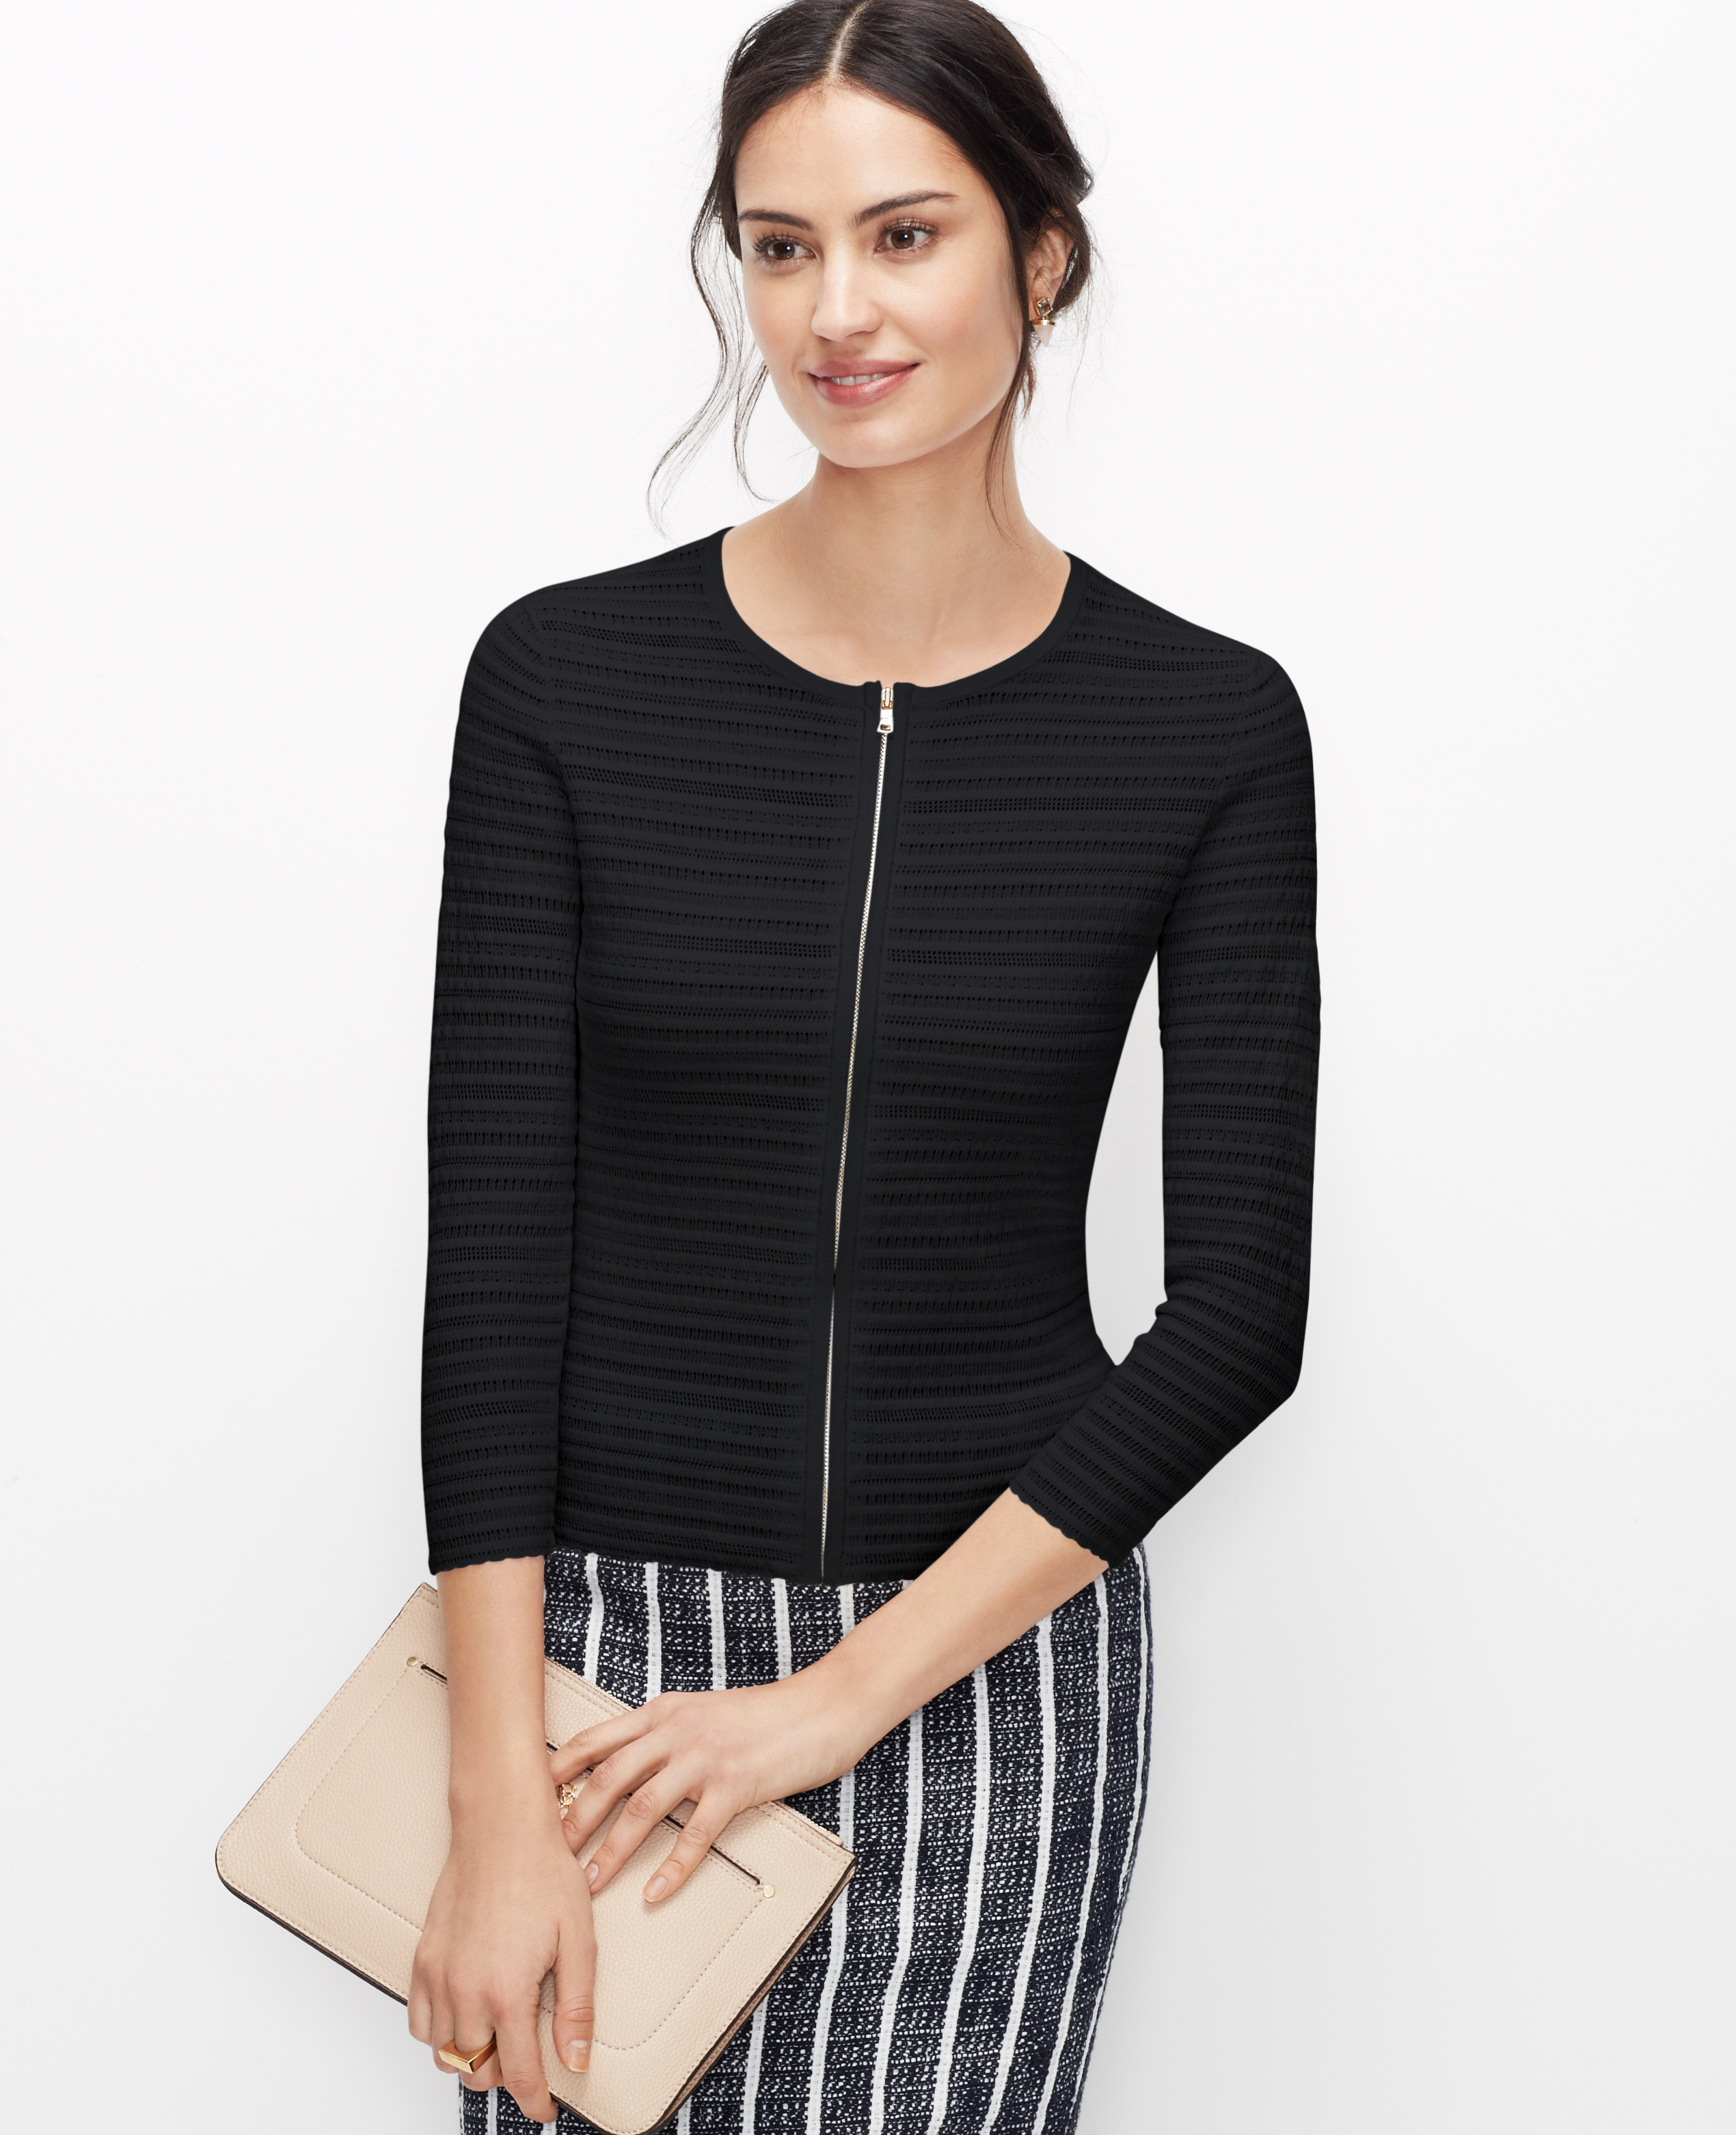 Ann taylor Petite Zip Front Sweater Jacket in Black | Lyst